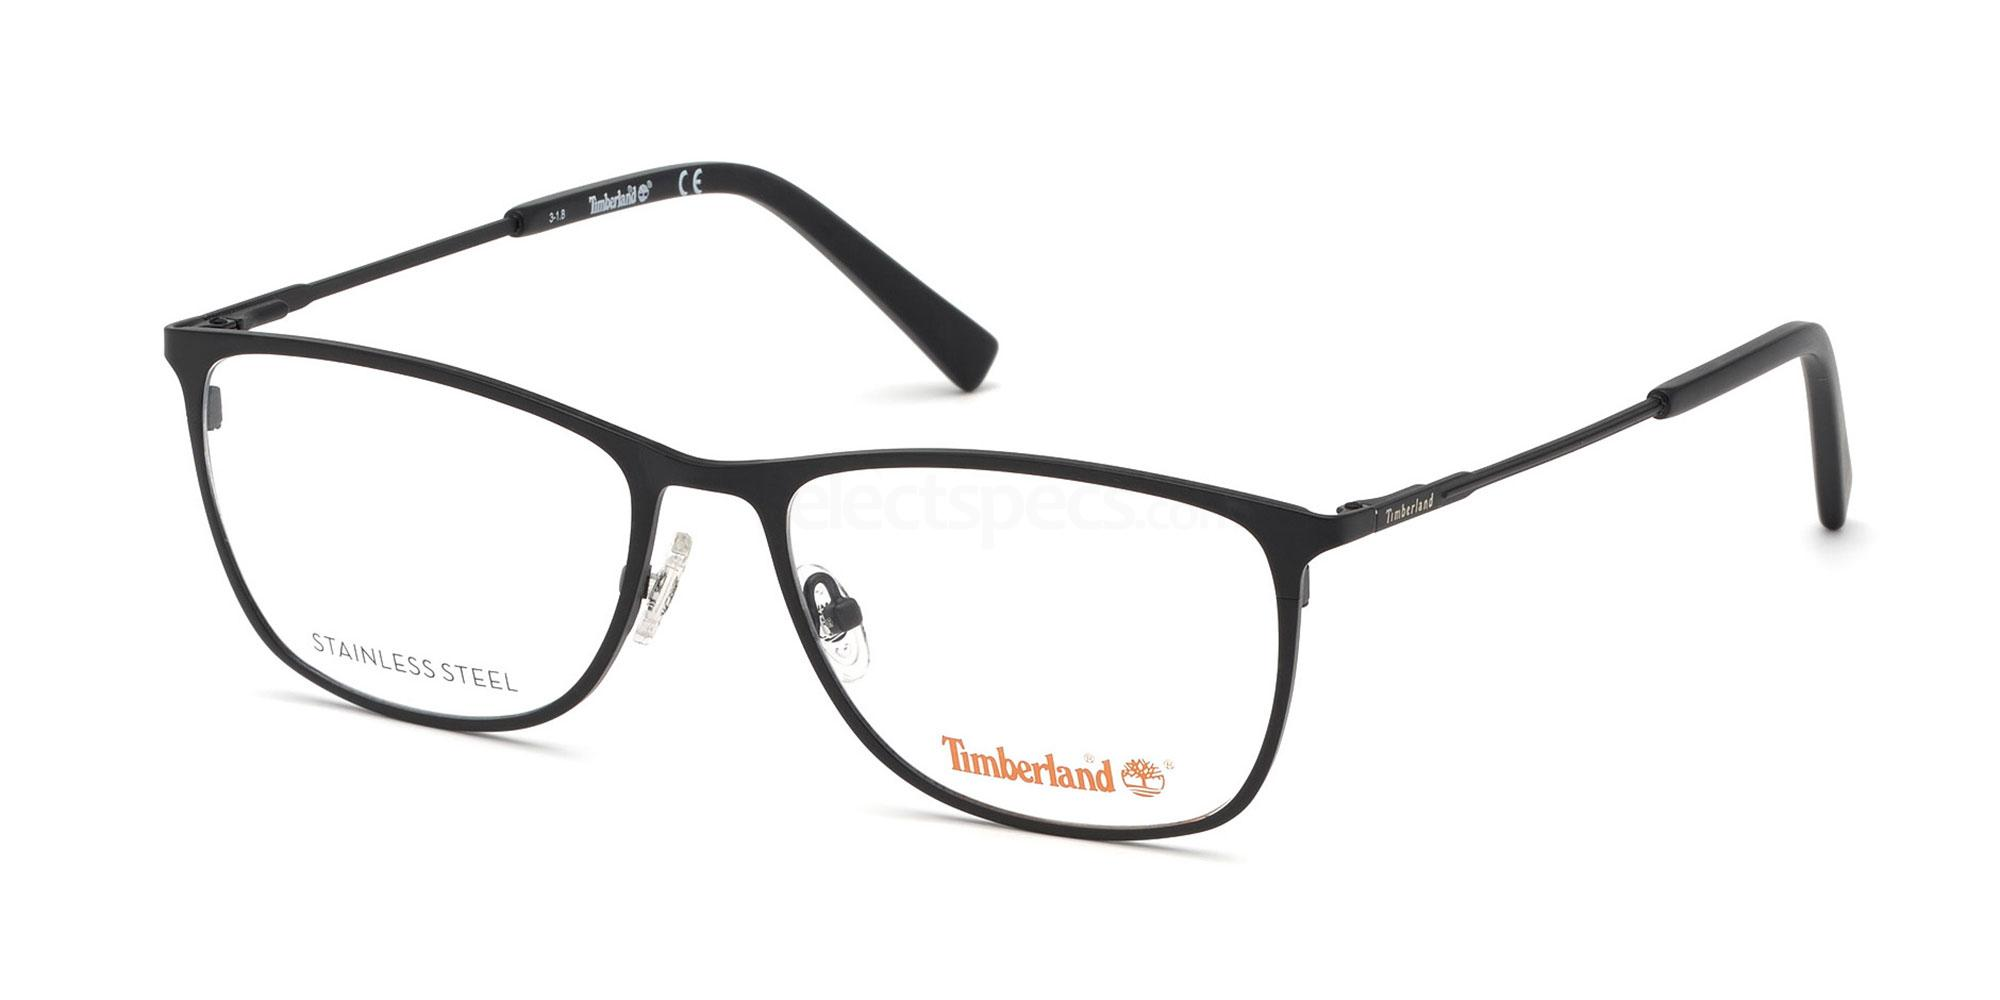 002 TB1616 Glasses, Timberland